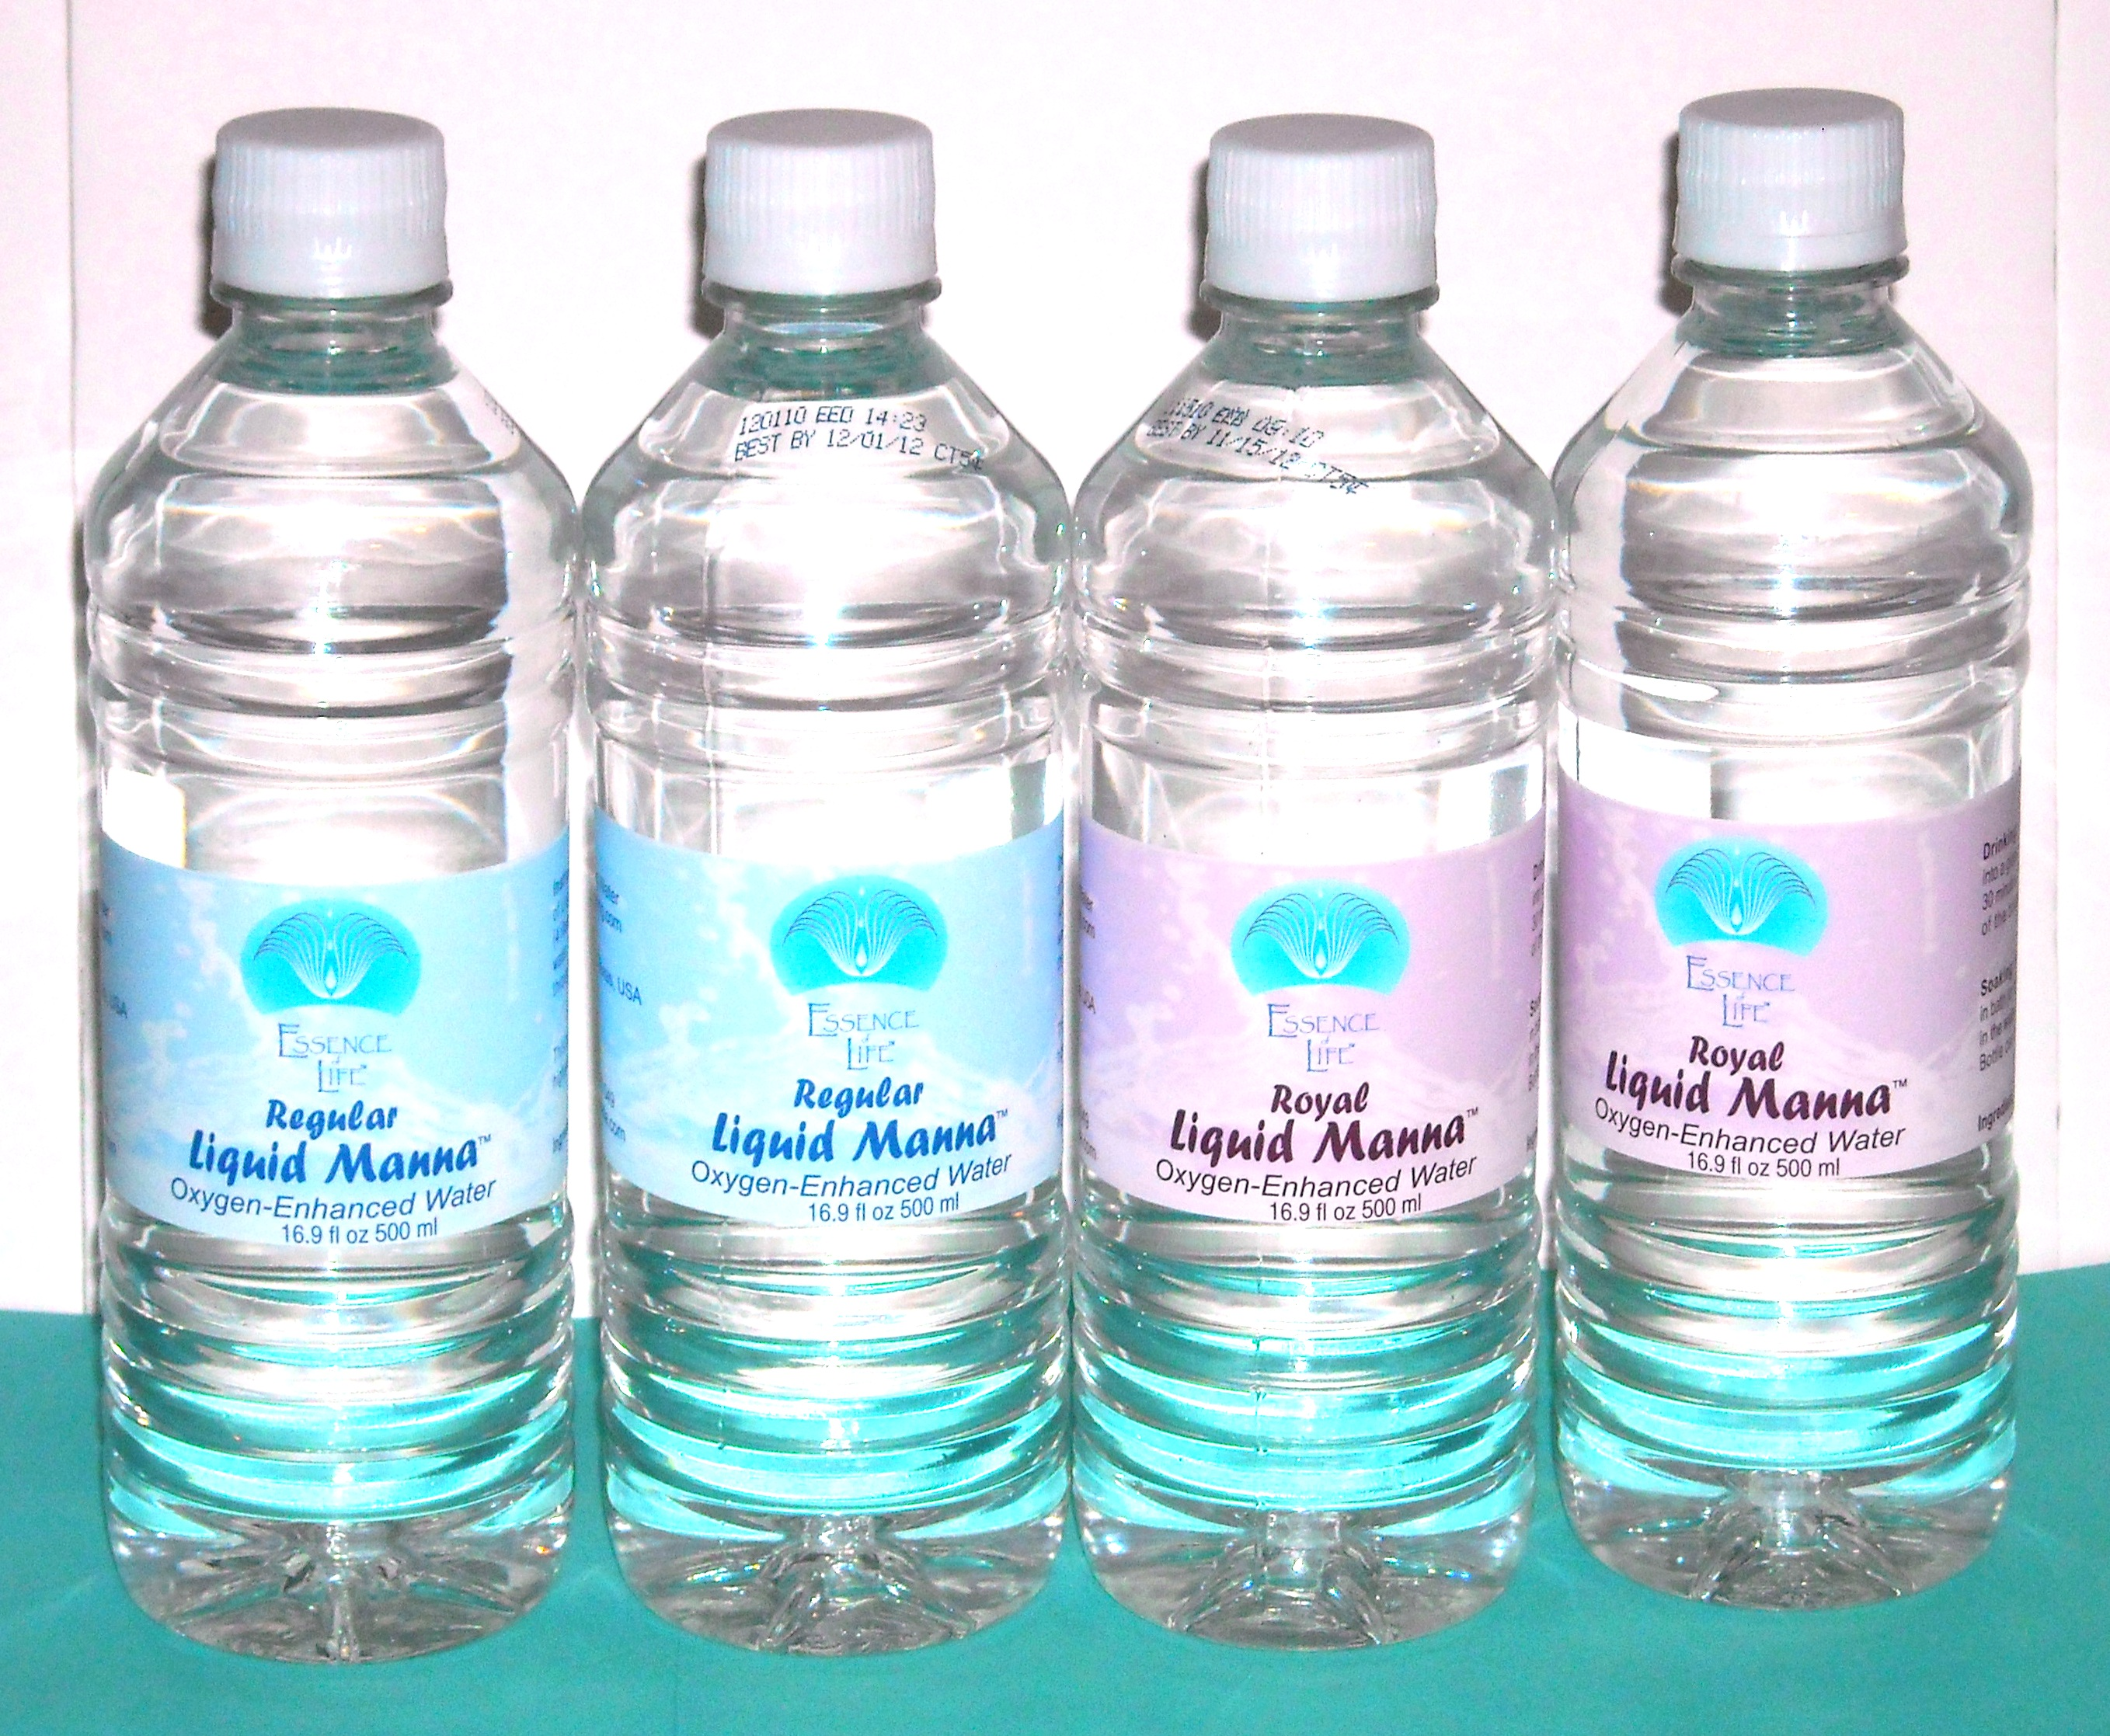 Bottles of Liquid Manna